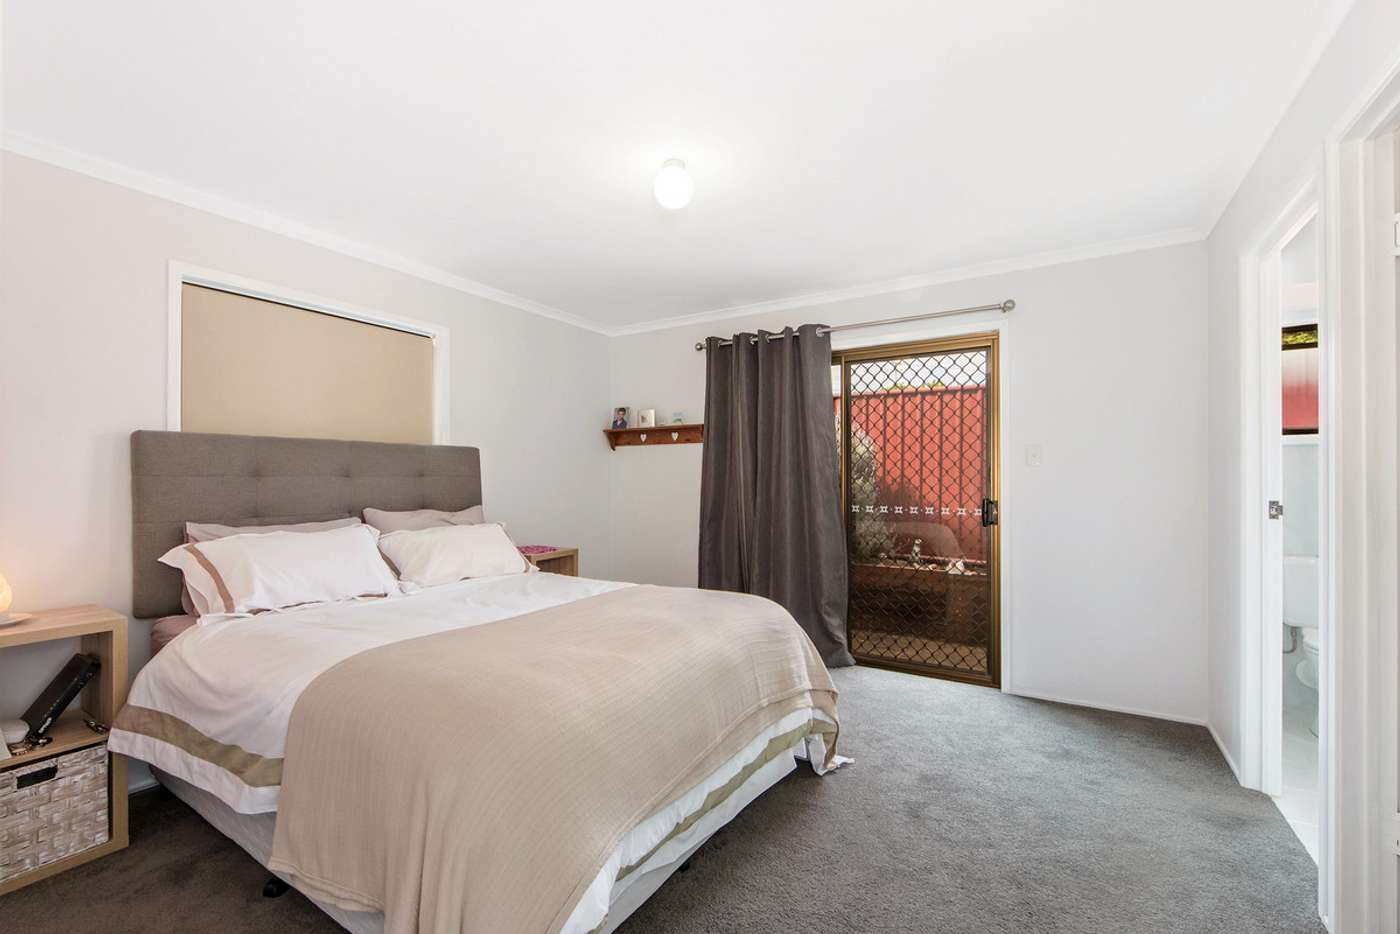 Sixth view of Homely house listing, 67 Wildey Street, Raceview QLD 4305